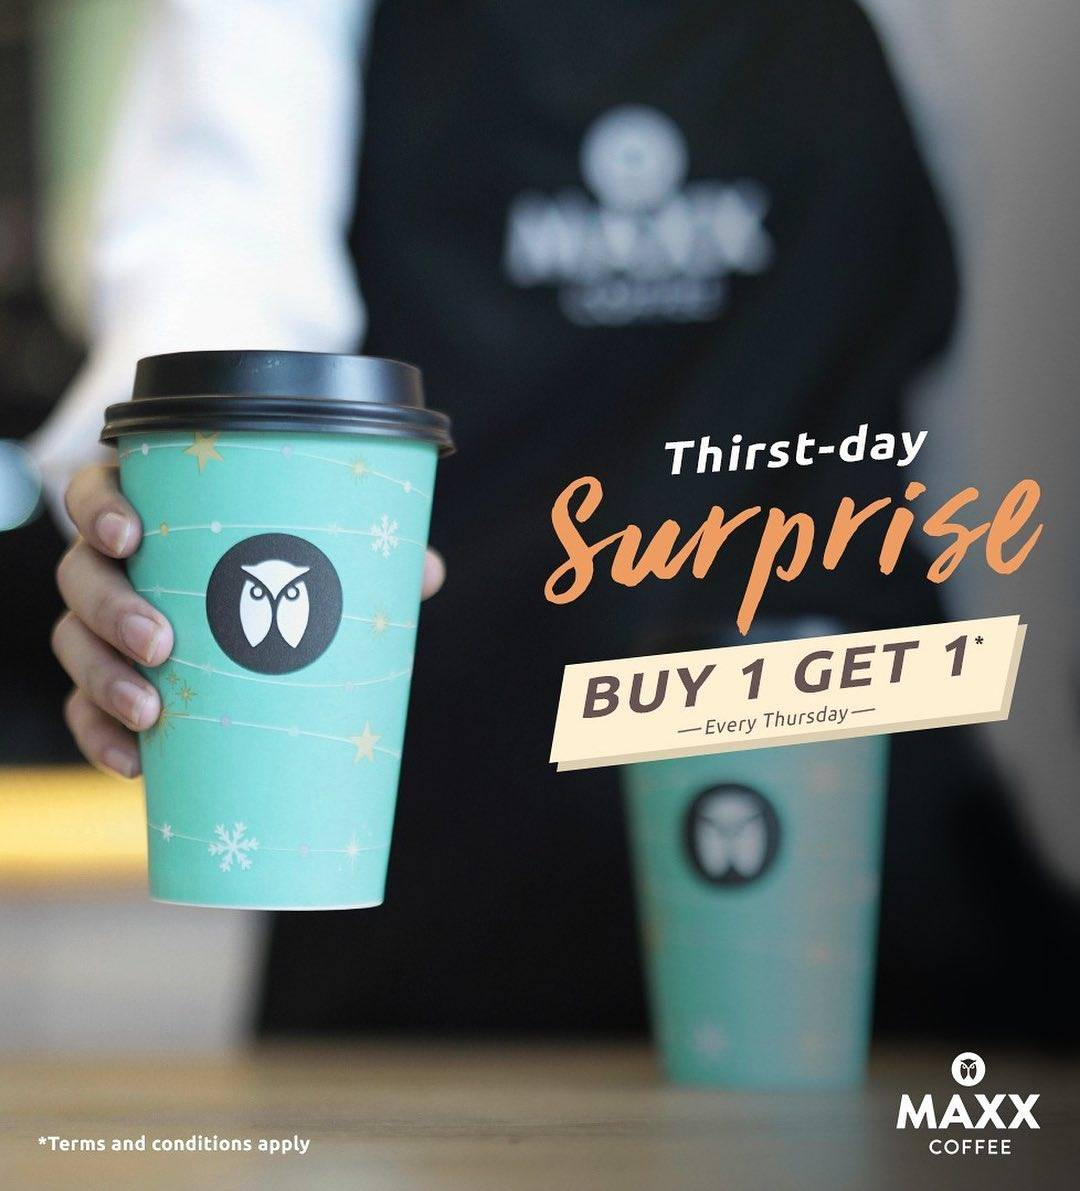 Maxx Coffe Promo Thirts-Day Surprise Buy 1 Get 1 Every Thursday